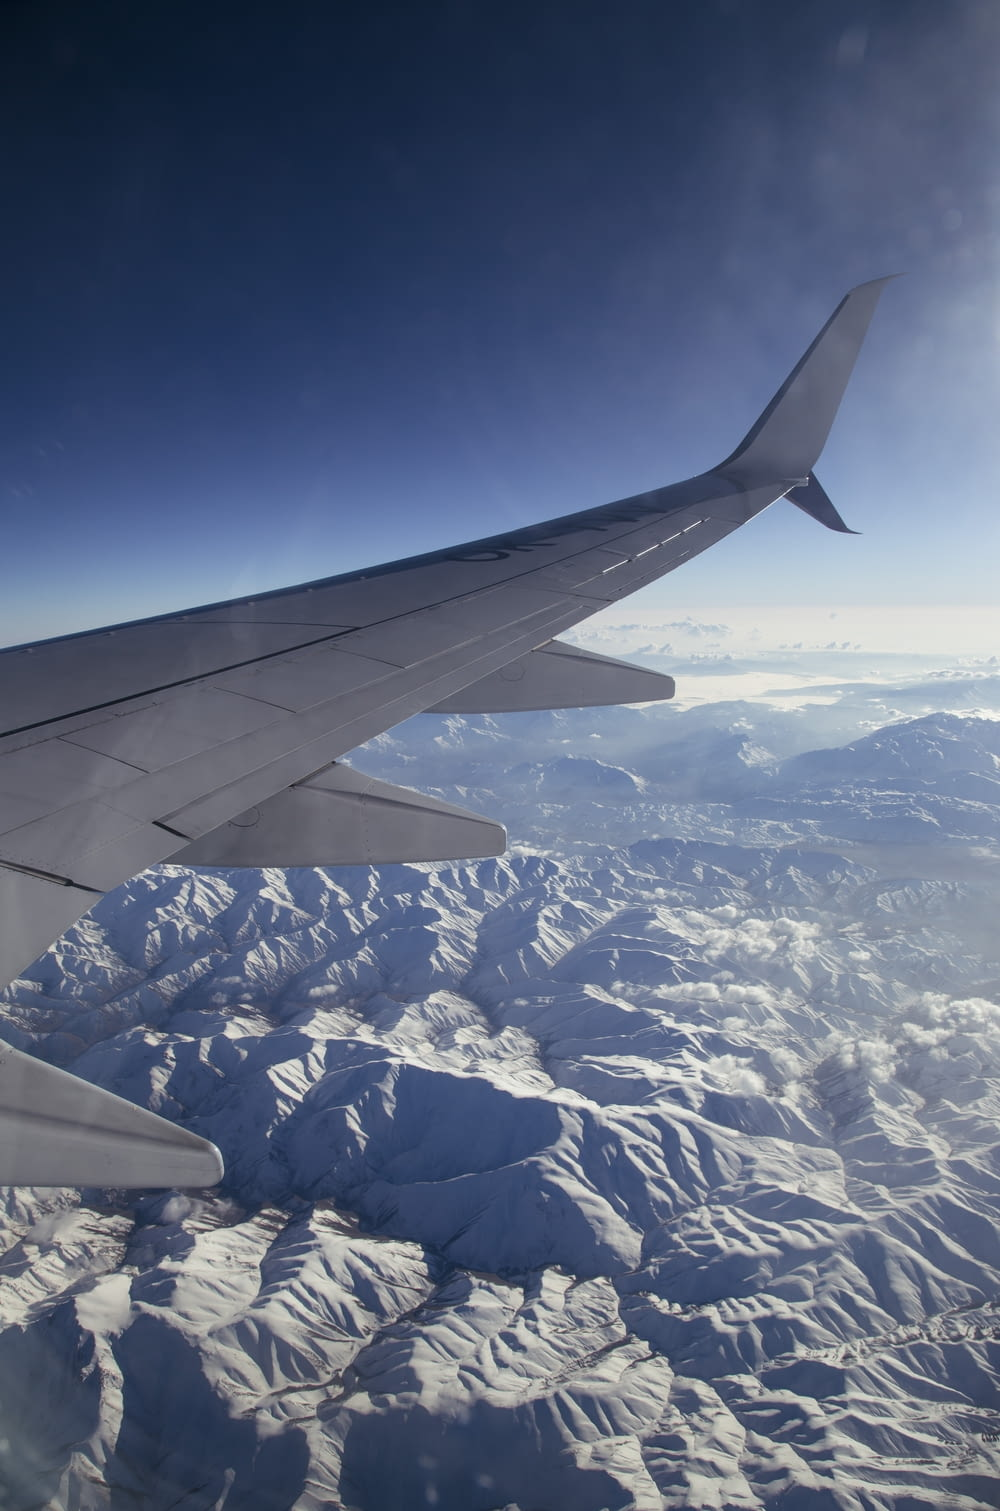 white and black airplane wing over white and blue mountains during daytime